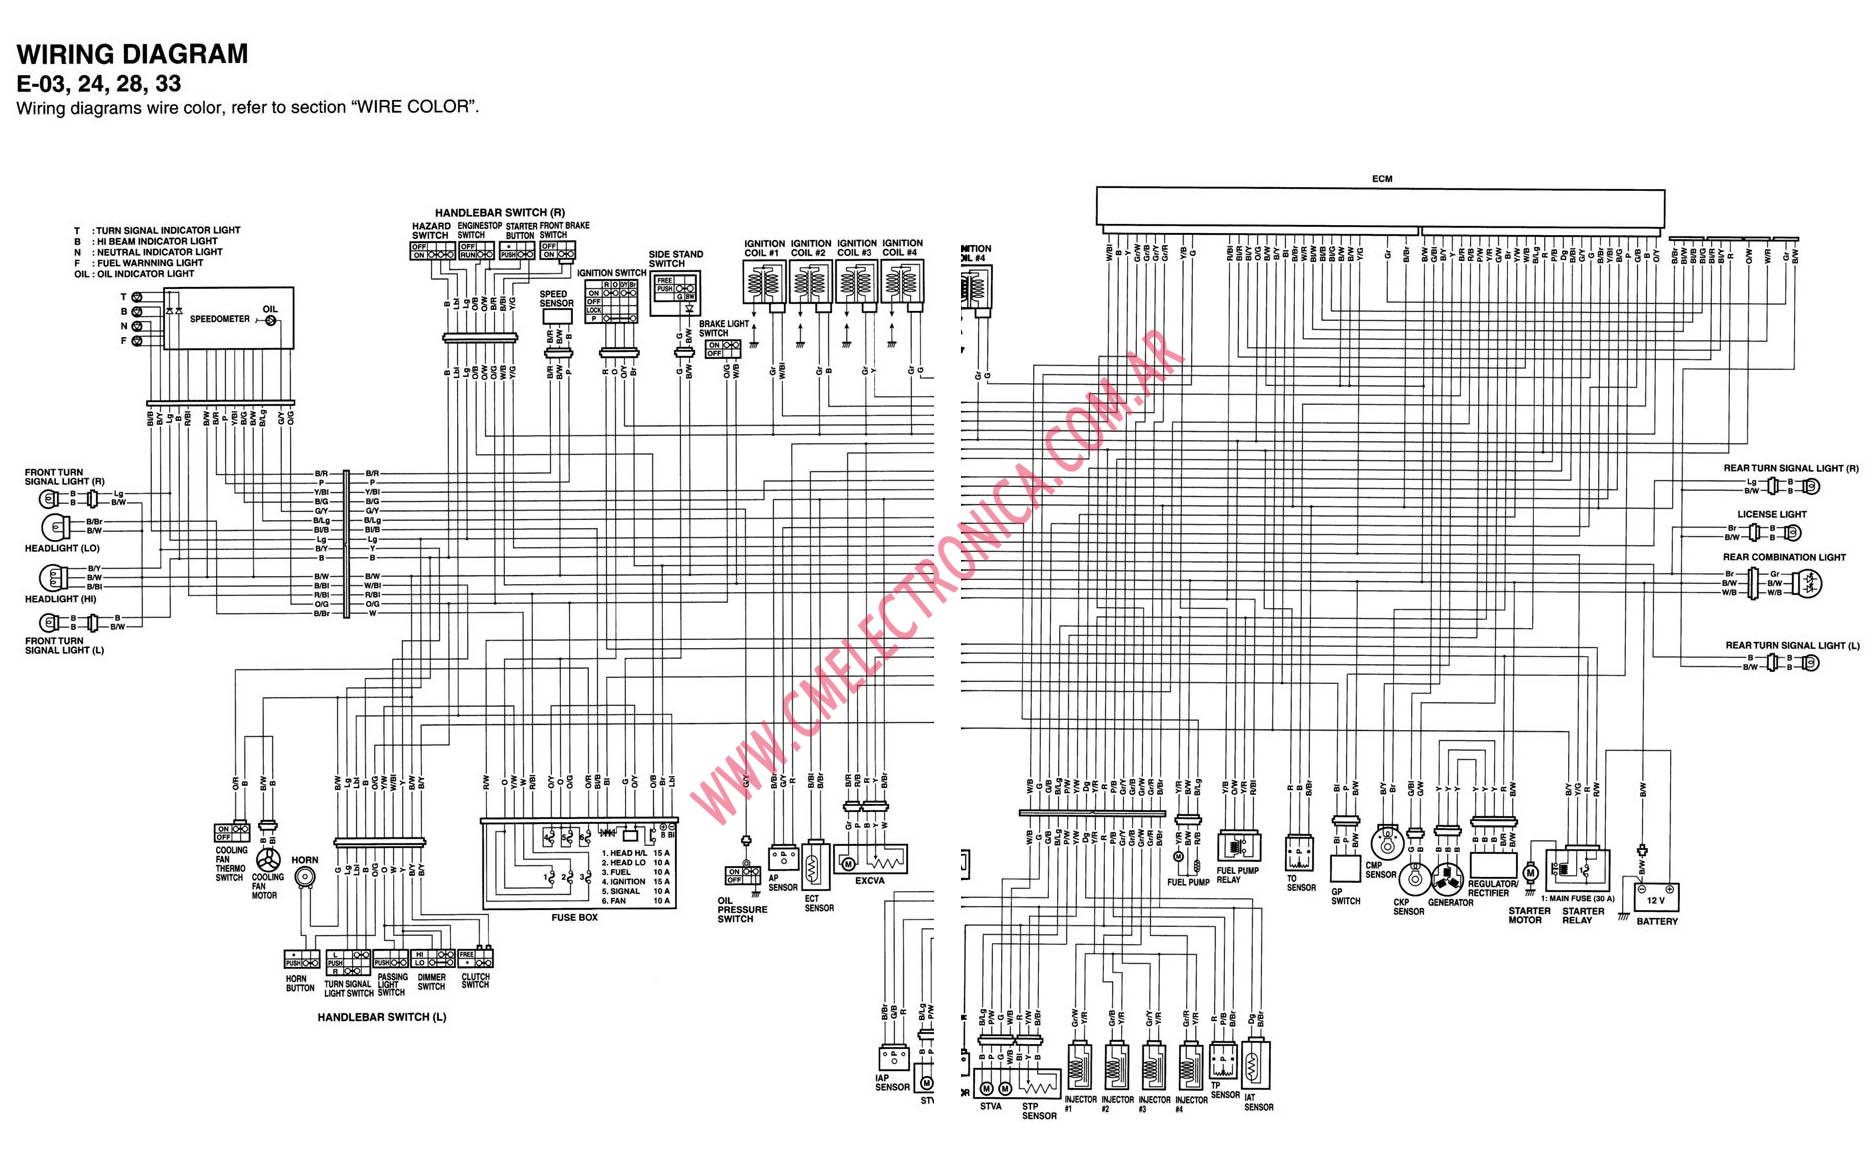 hight resolution of 2001 gsxr 1000 wiring diagram wiring diagram source 2006 gsxr 600 wiring diagram 2001 suzuki gsxr 1000 wiring diagram